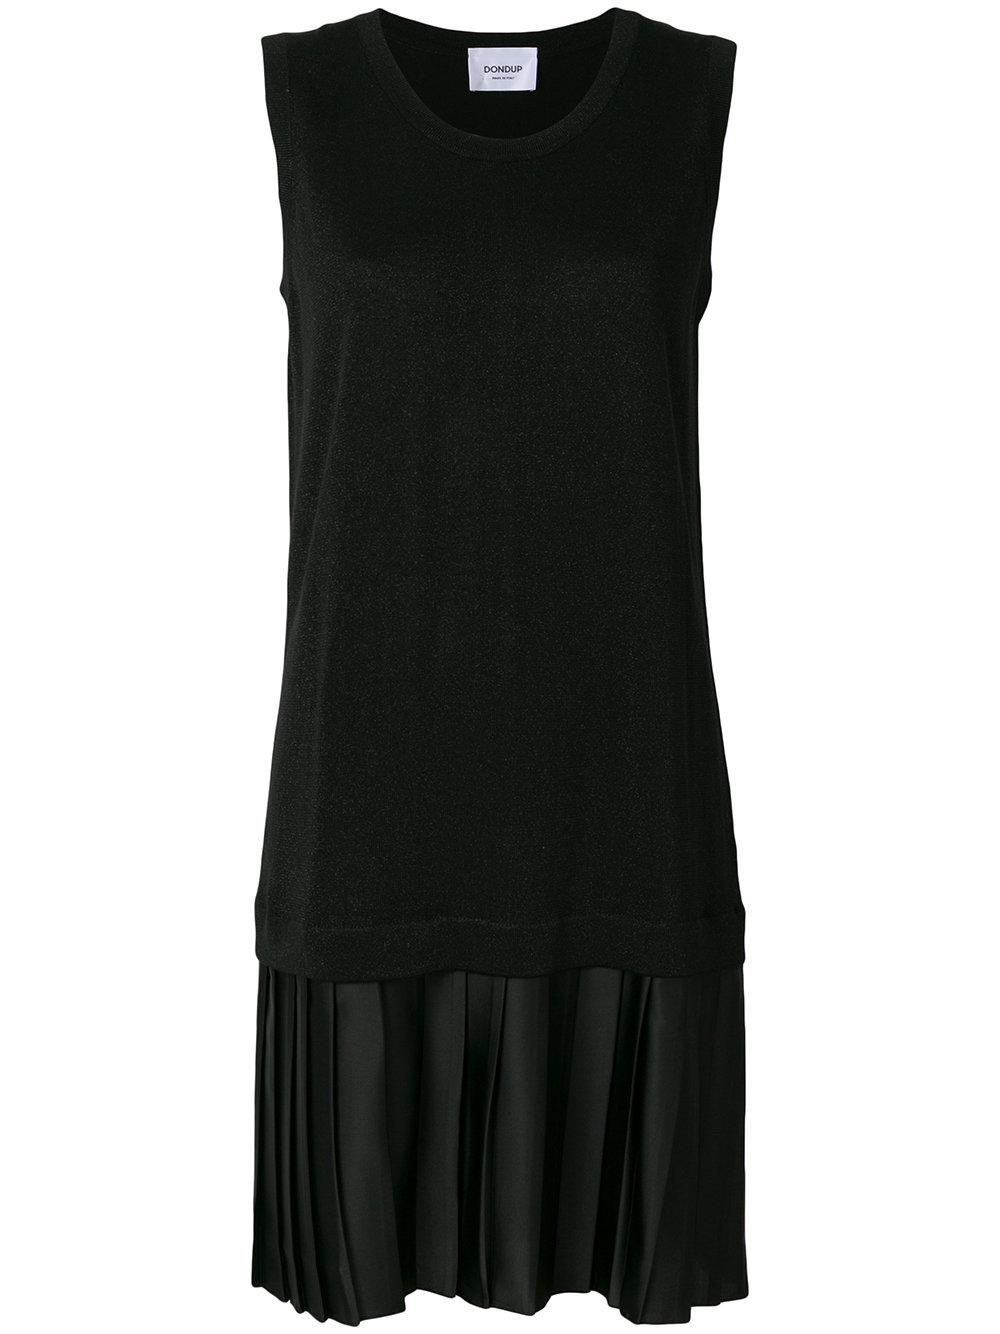 Black lurex dress Dondup Sale Free Shipping Free Shipping Limited Edition Pictures Cheap Online Best Sale Cheap Price jWzs168QR